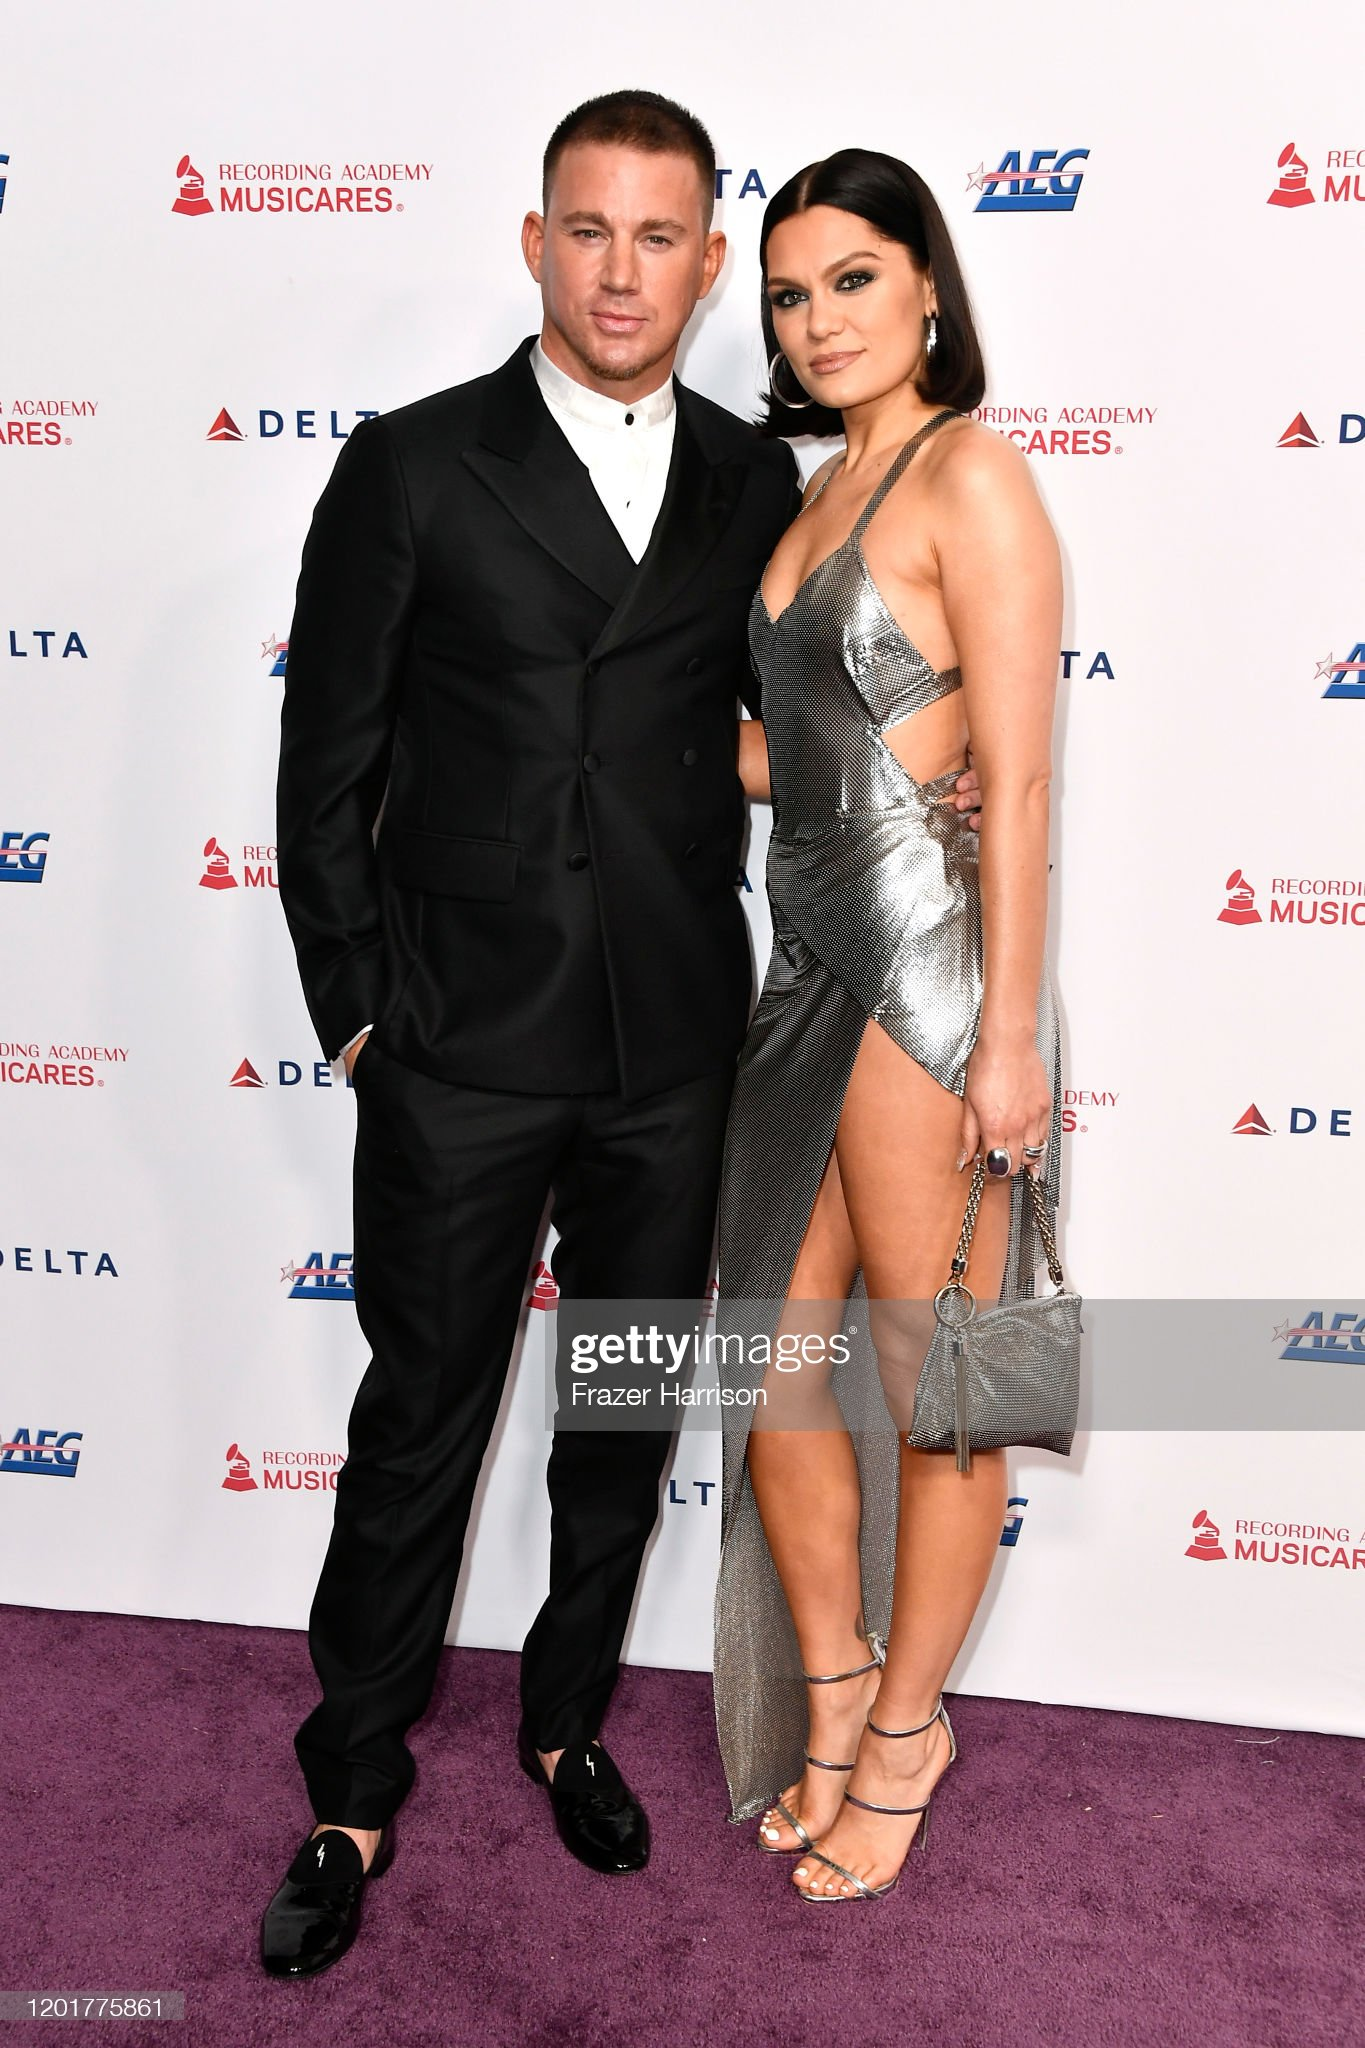 ¿Cuánto mide Channing Tatum? - Altura - Real height Channing-tatum-and-jessie-j-attend-musicares-person-of-the-year-at-picture-id1201775861?s=2048x2048